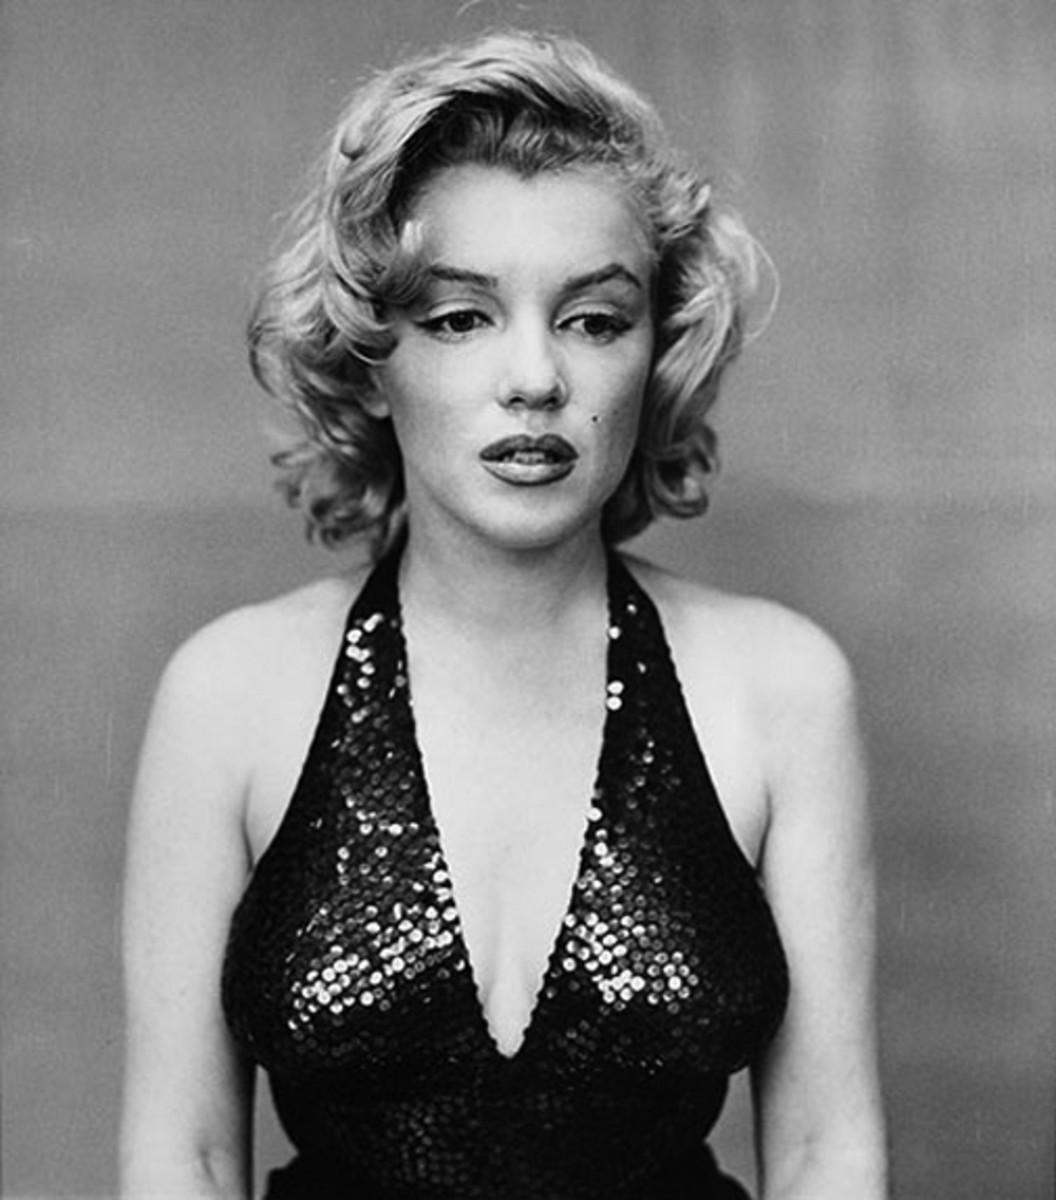 Avedon was known for his psychologically revealing portraits, such as this one of actress Marilyn Monroe.